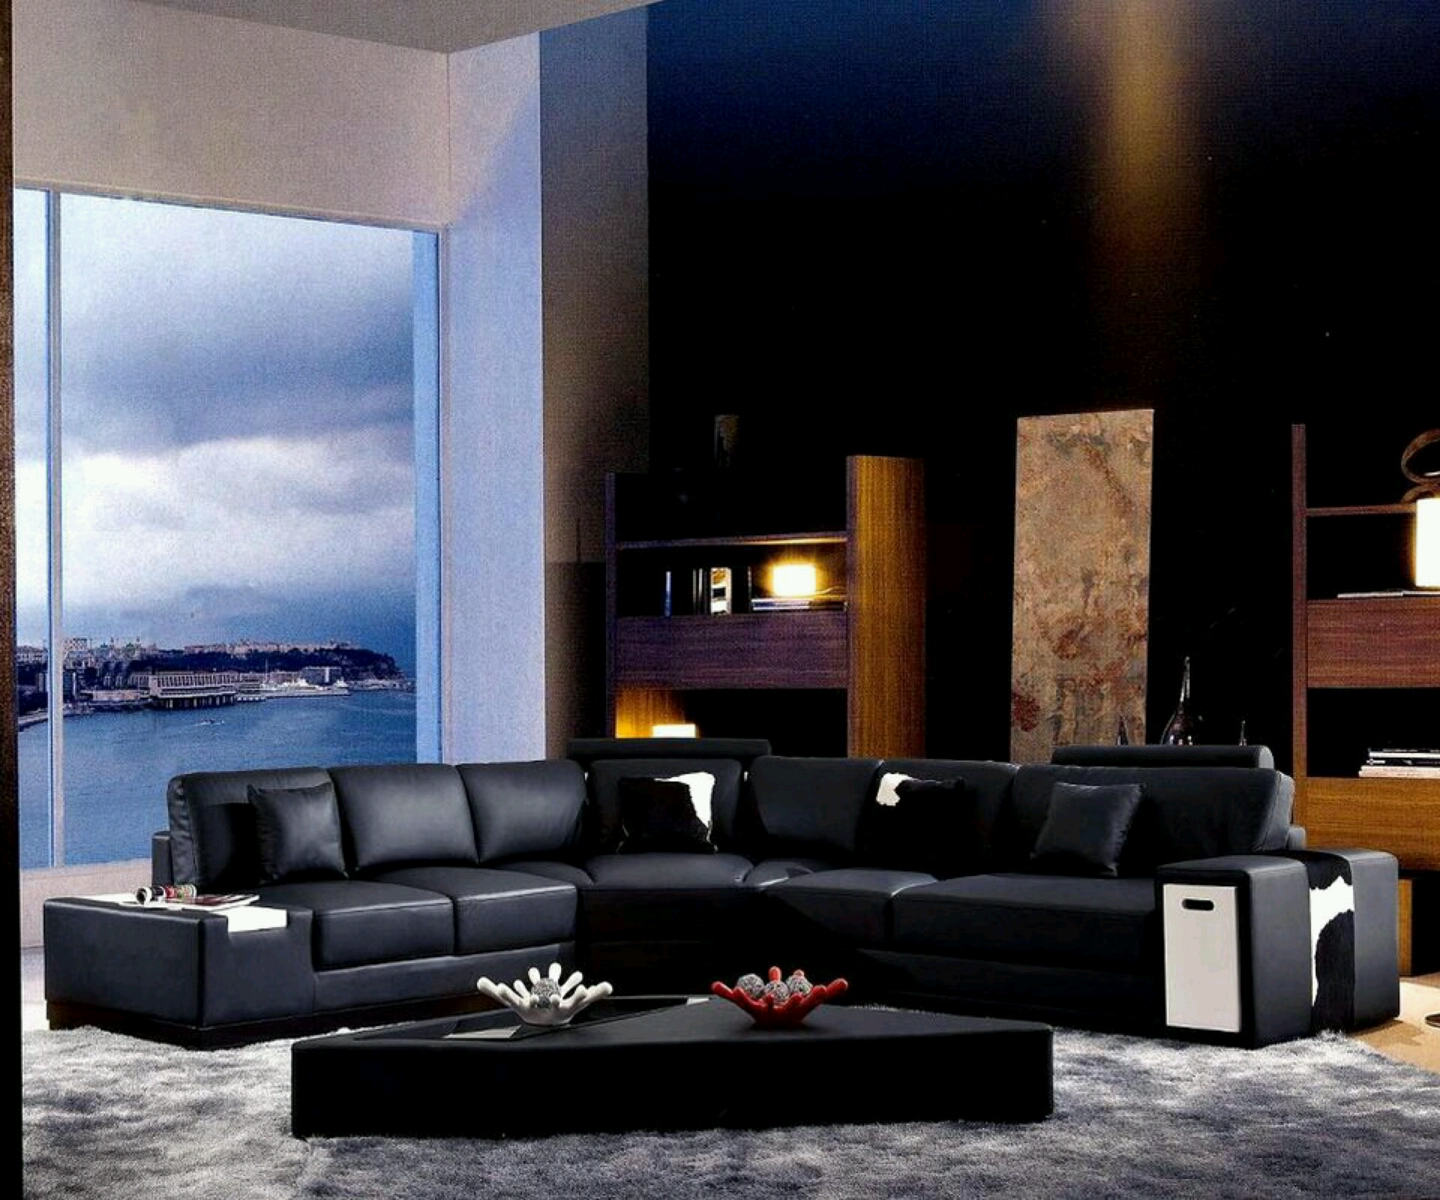 New home designs latest luxury living rooms interior modern designs ideas - Modern interior design for living room ...